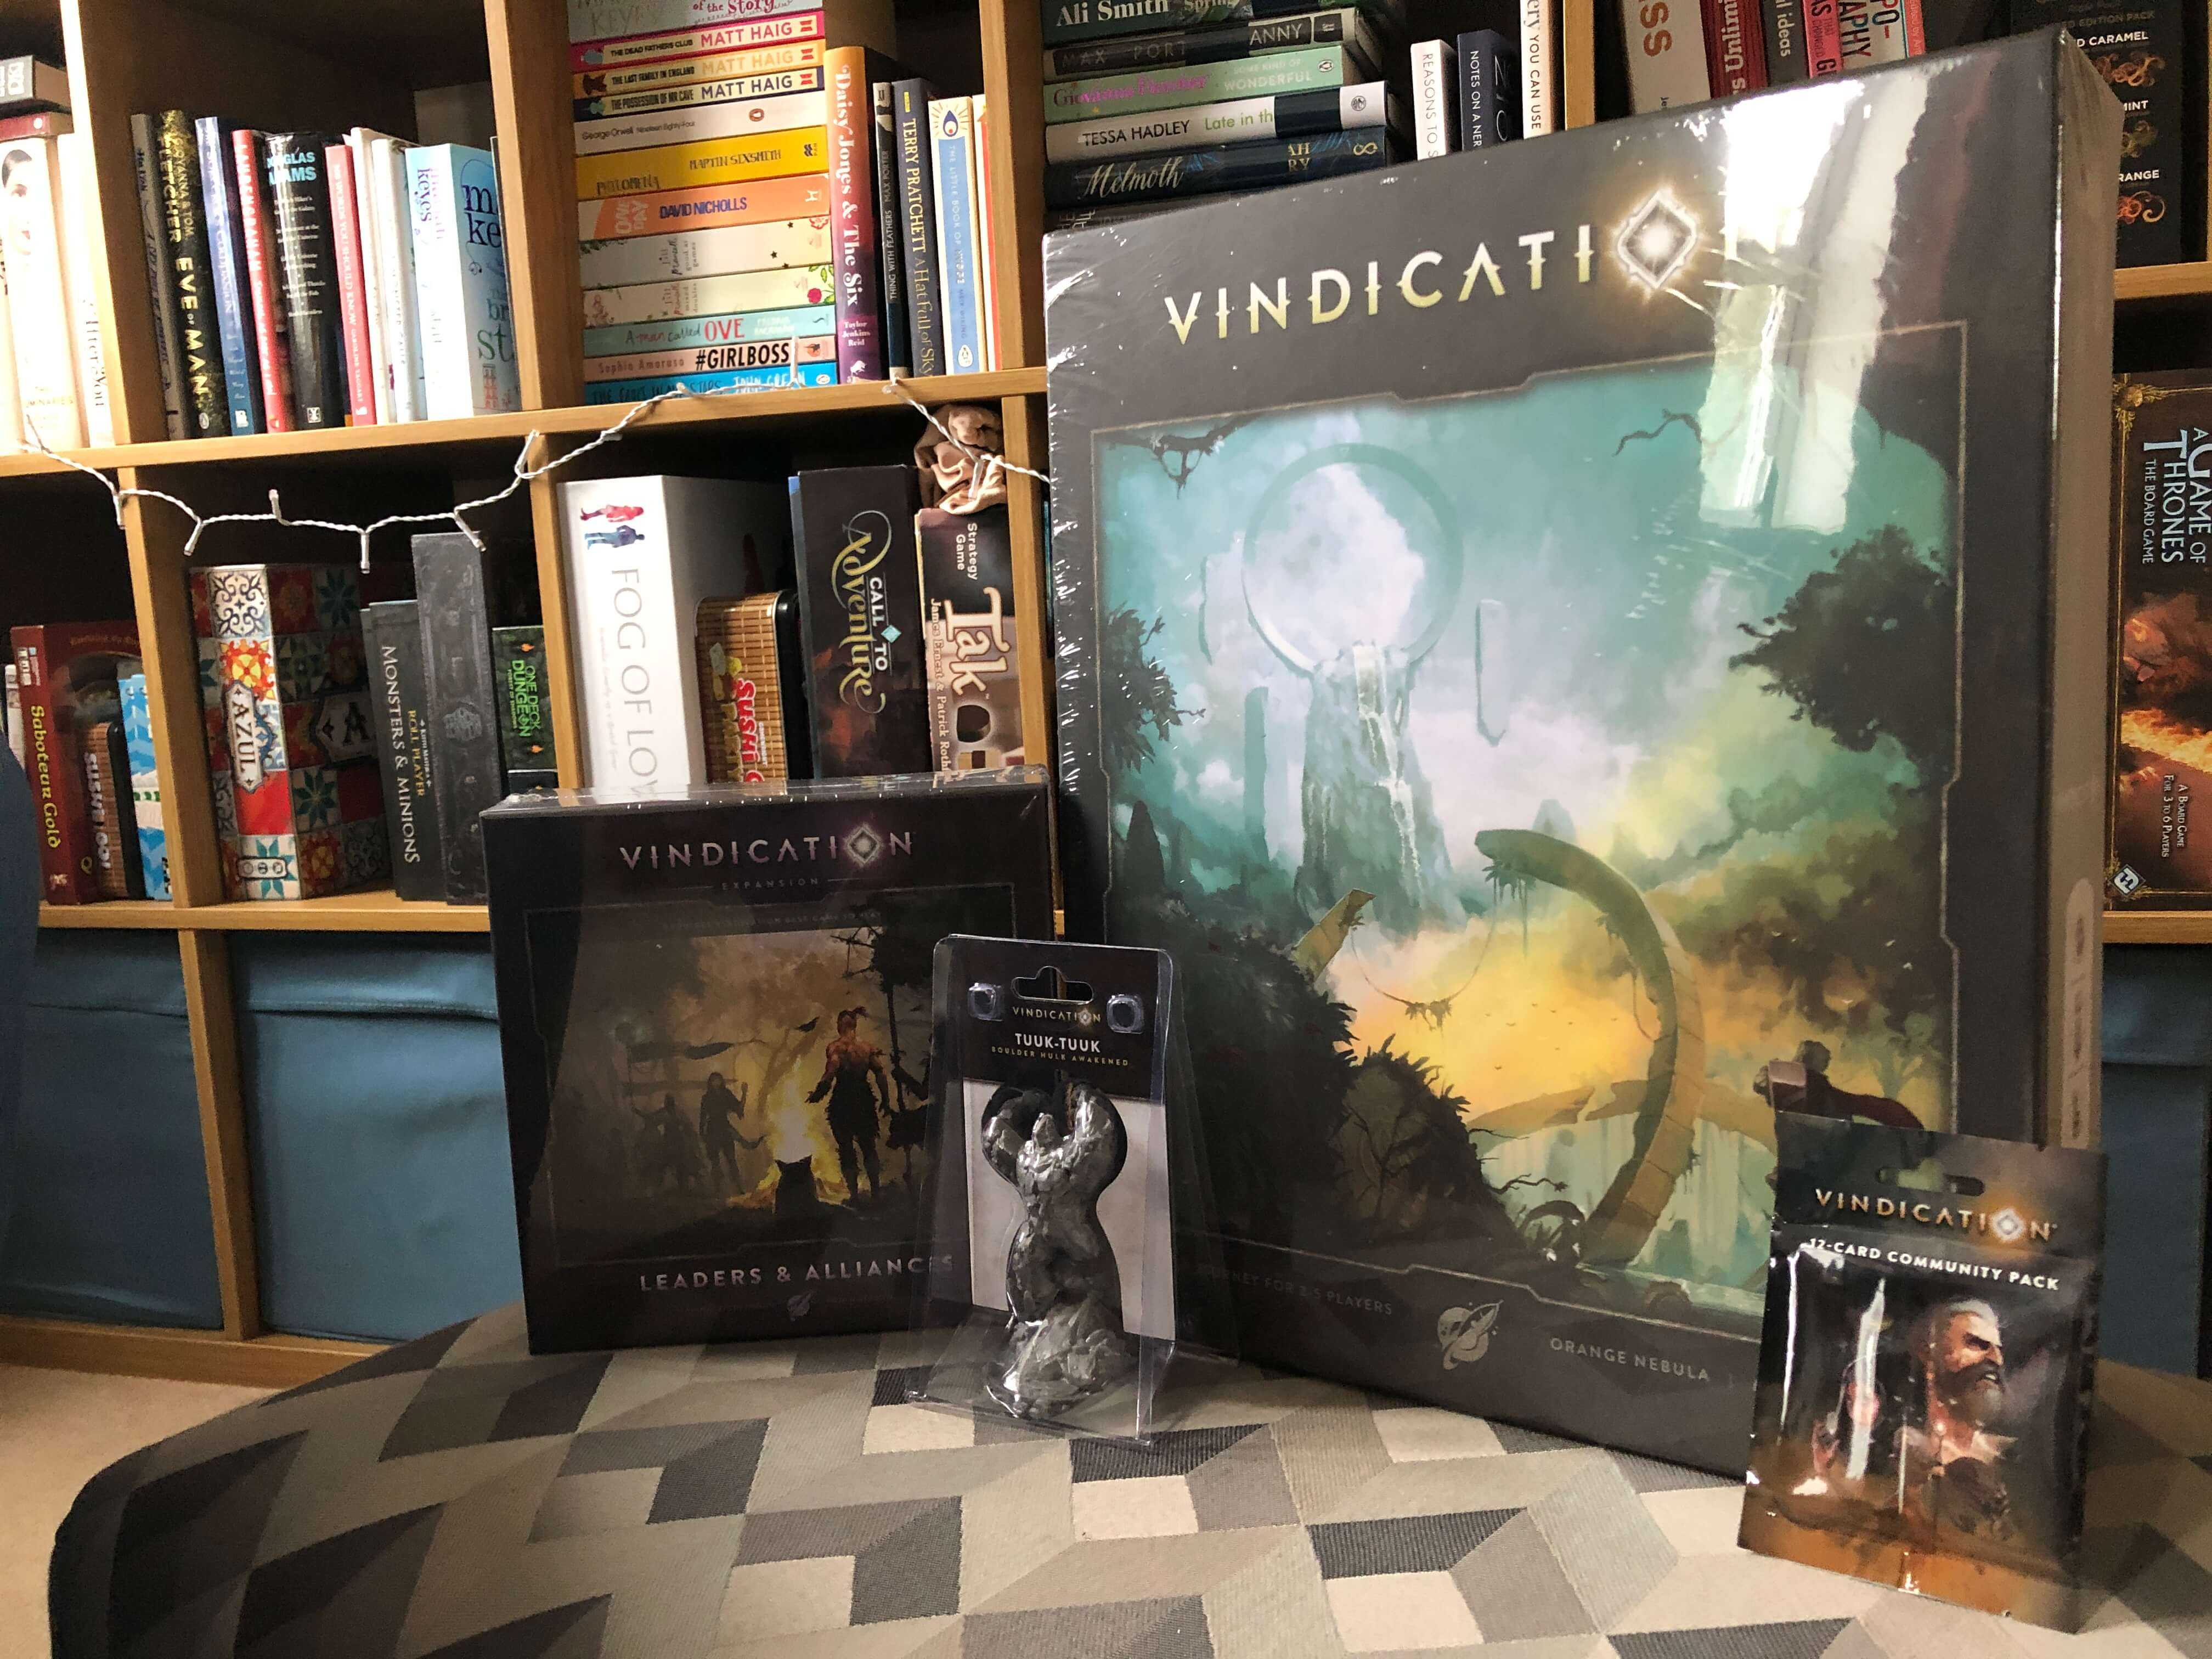 Vindication came in the mail yesterday and I'm really looking forward to giving this a play!